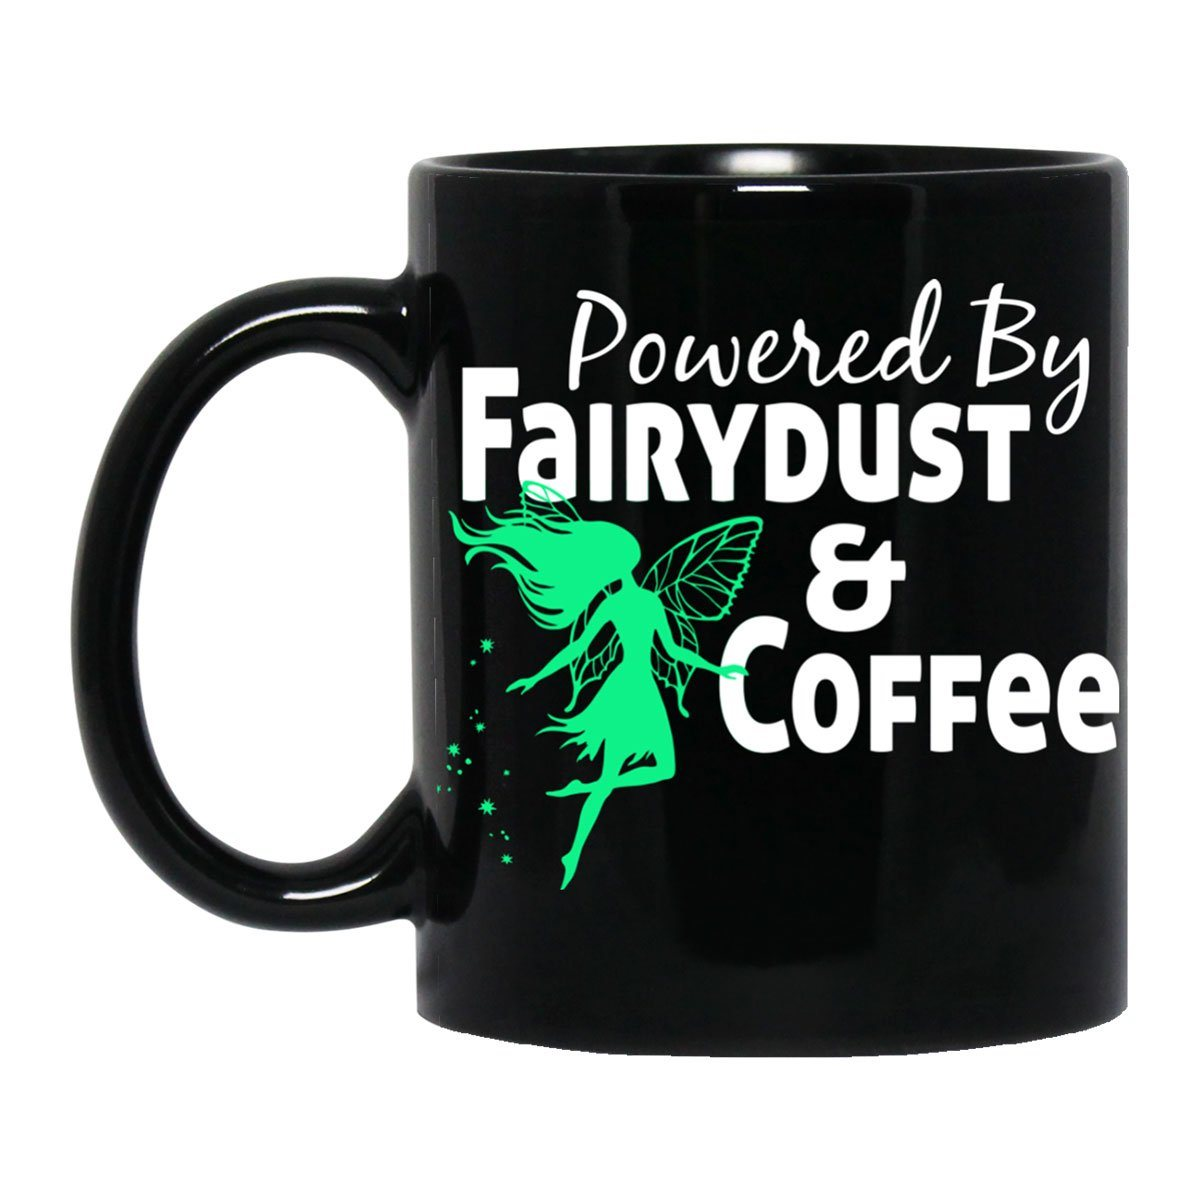 Powered By Fairydust Black Mug Drinkware Black One Size